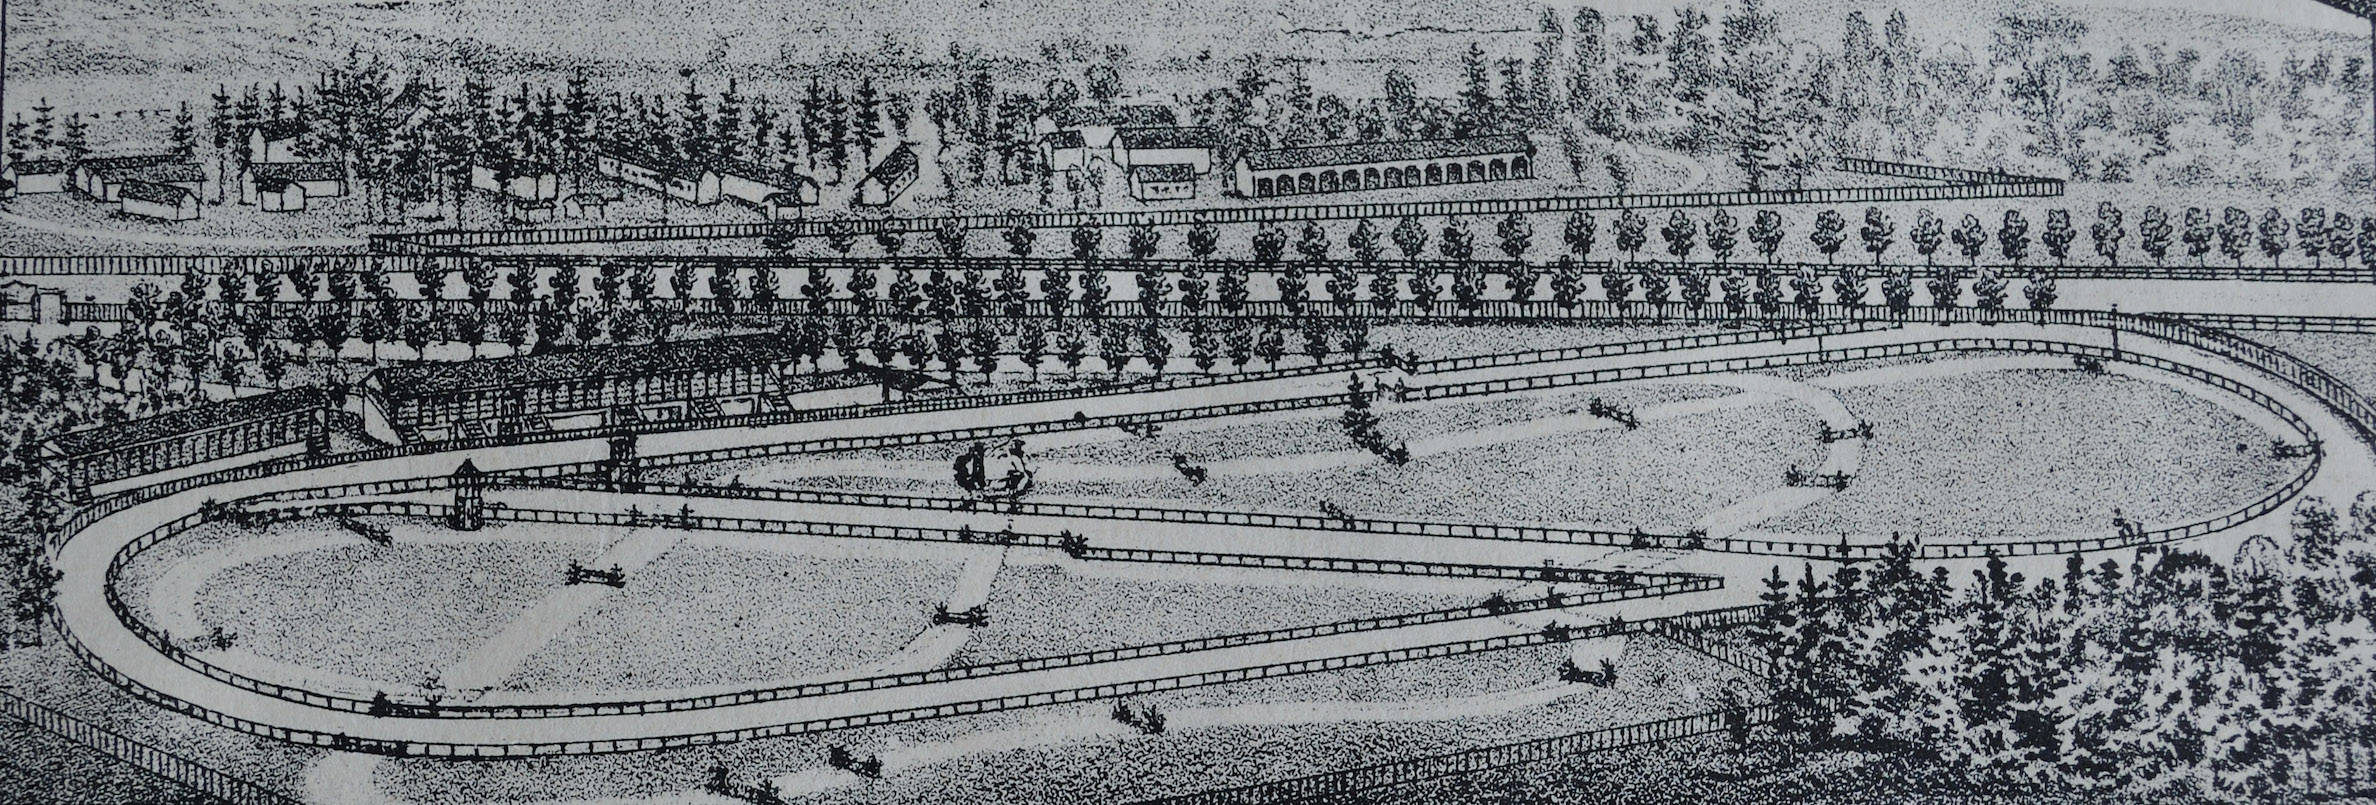 The 1864 circuit and grandstand, with Horse Haven beyond. Image courtesy of Saratoga Springs Public Library